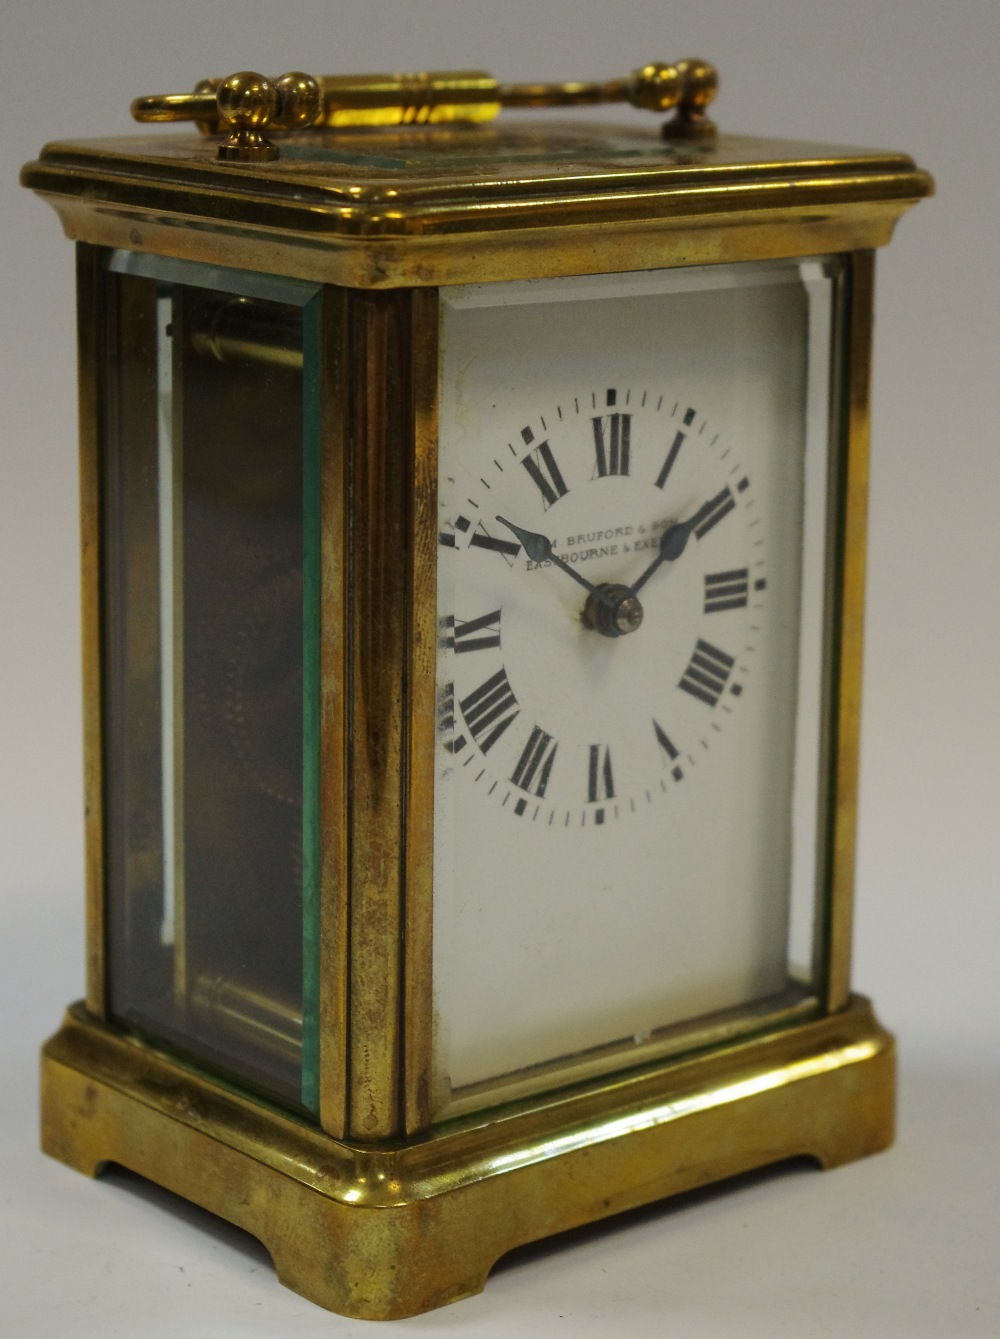 Lot 5 - An early 20th century lacquered brass carriage clock